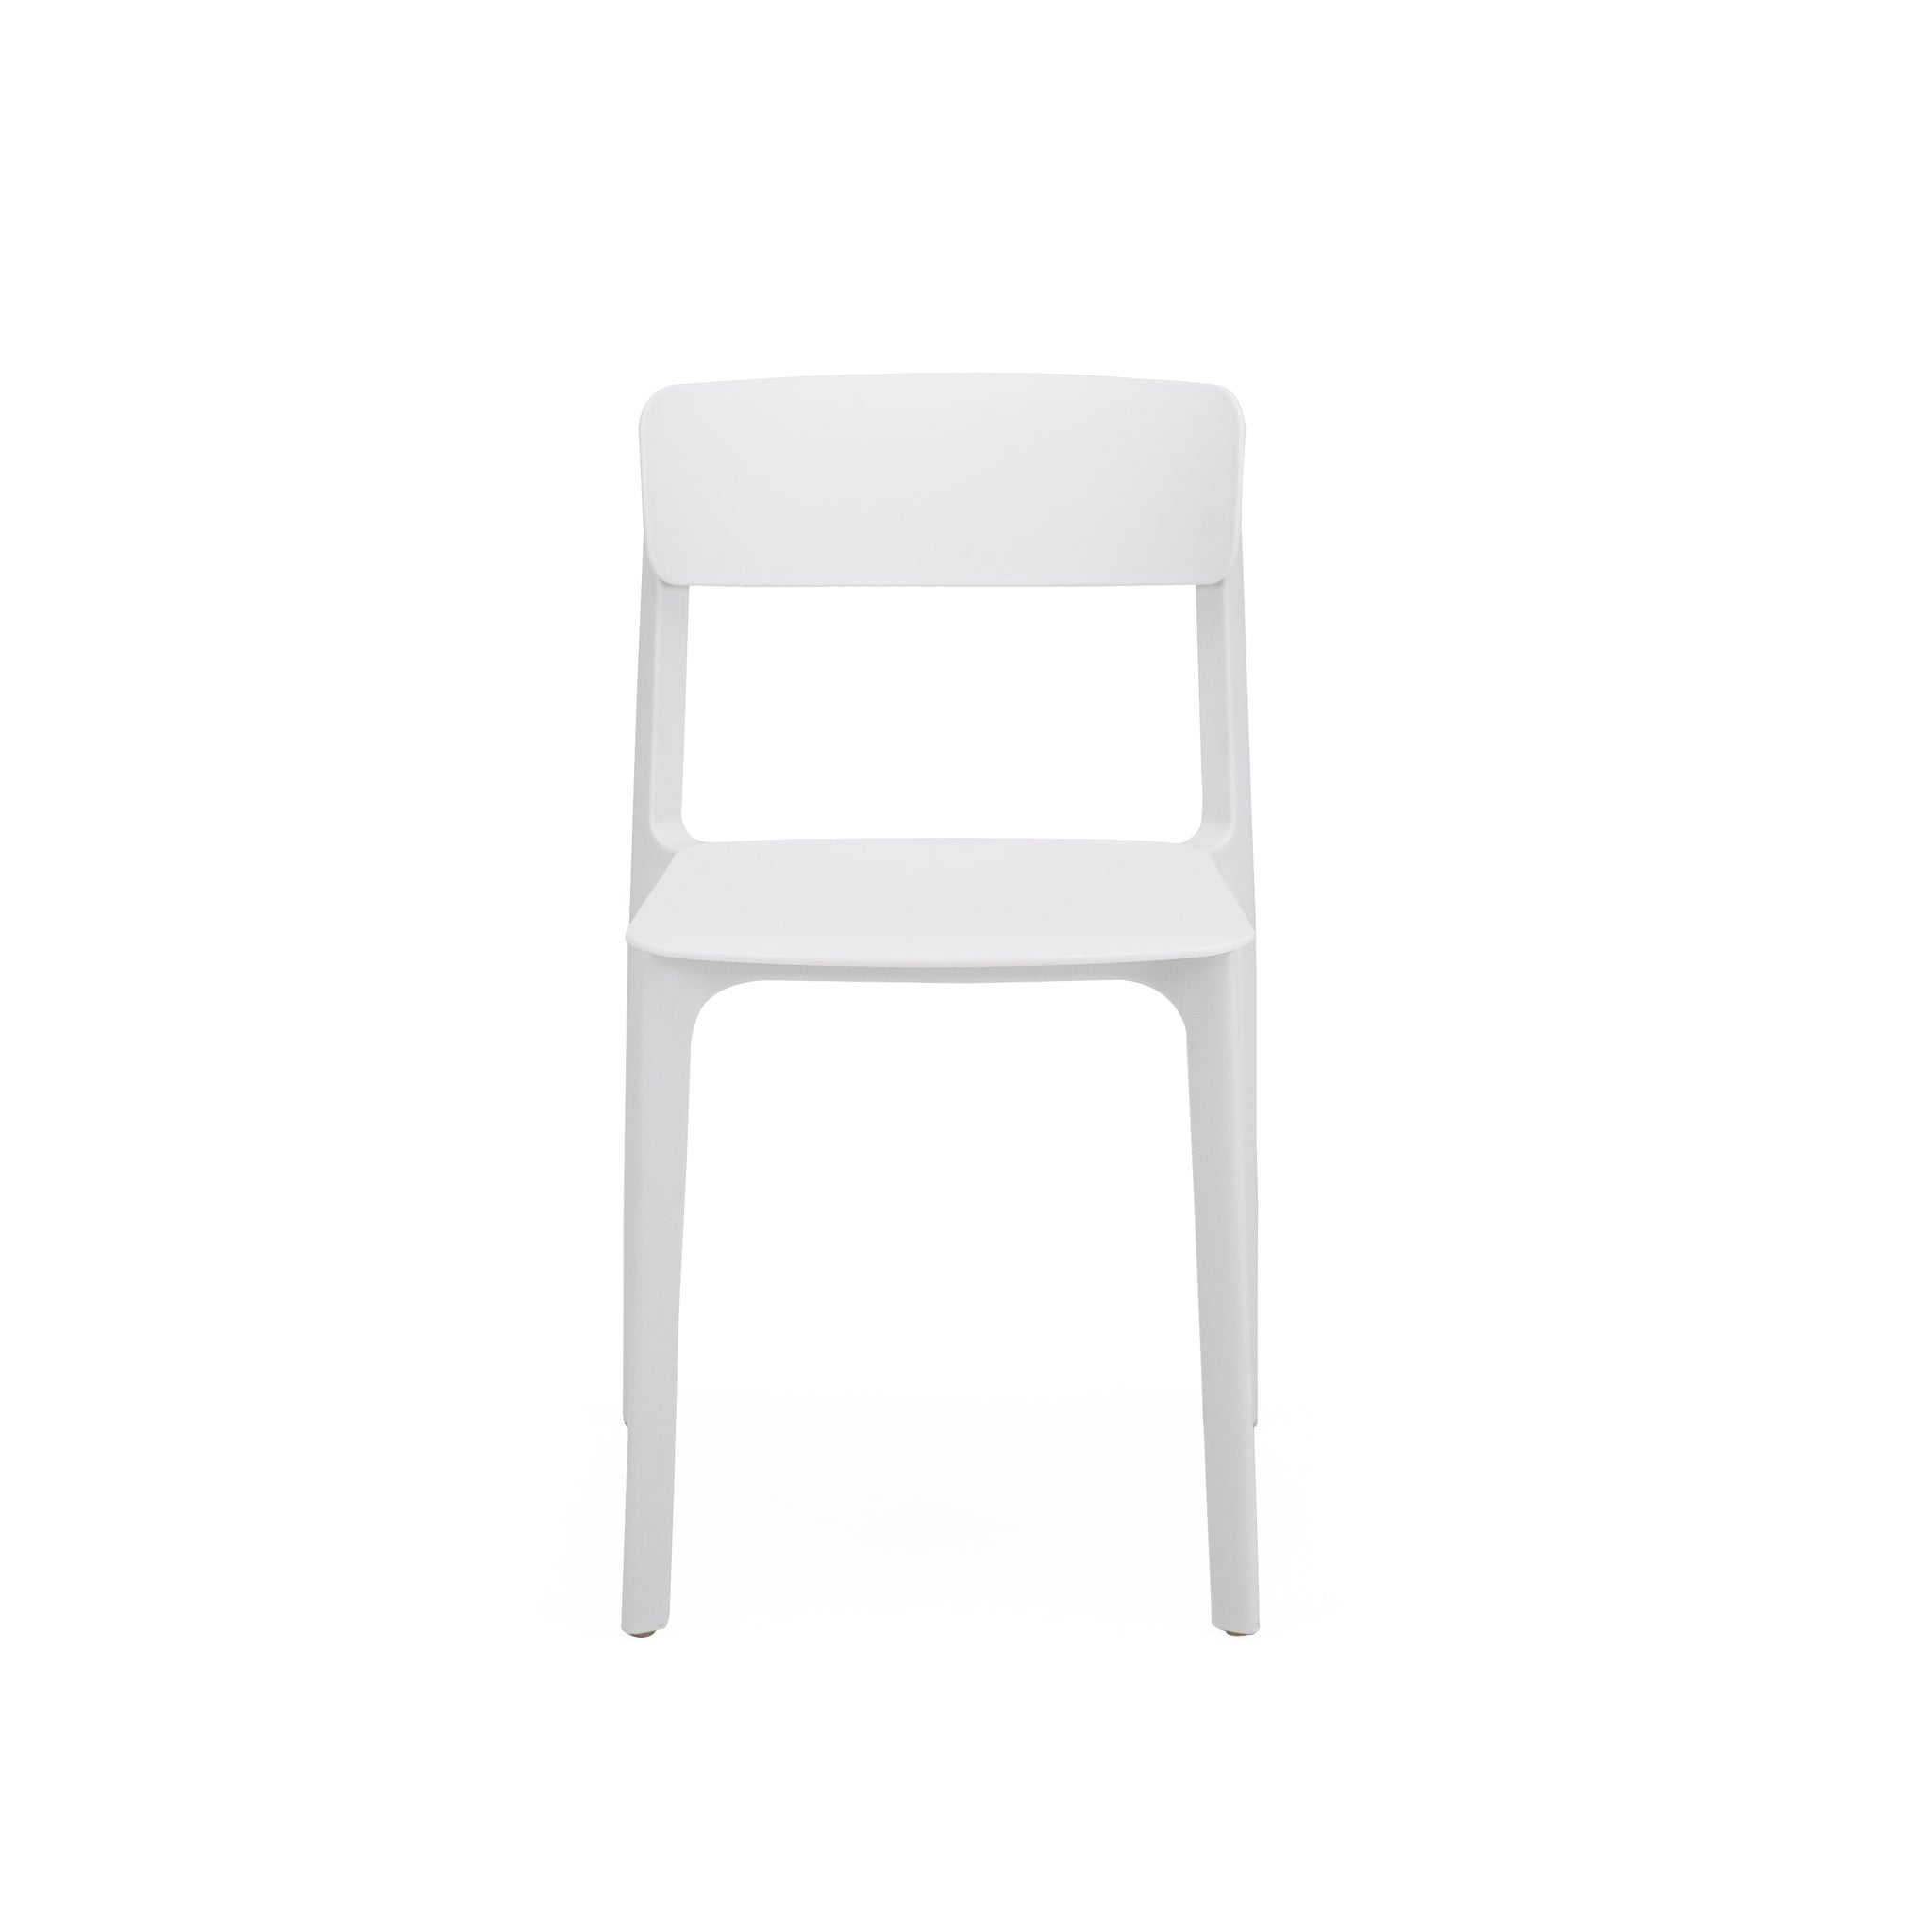 Clar Chair